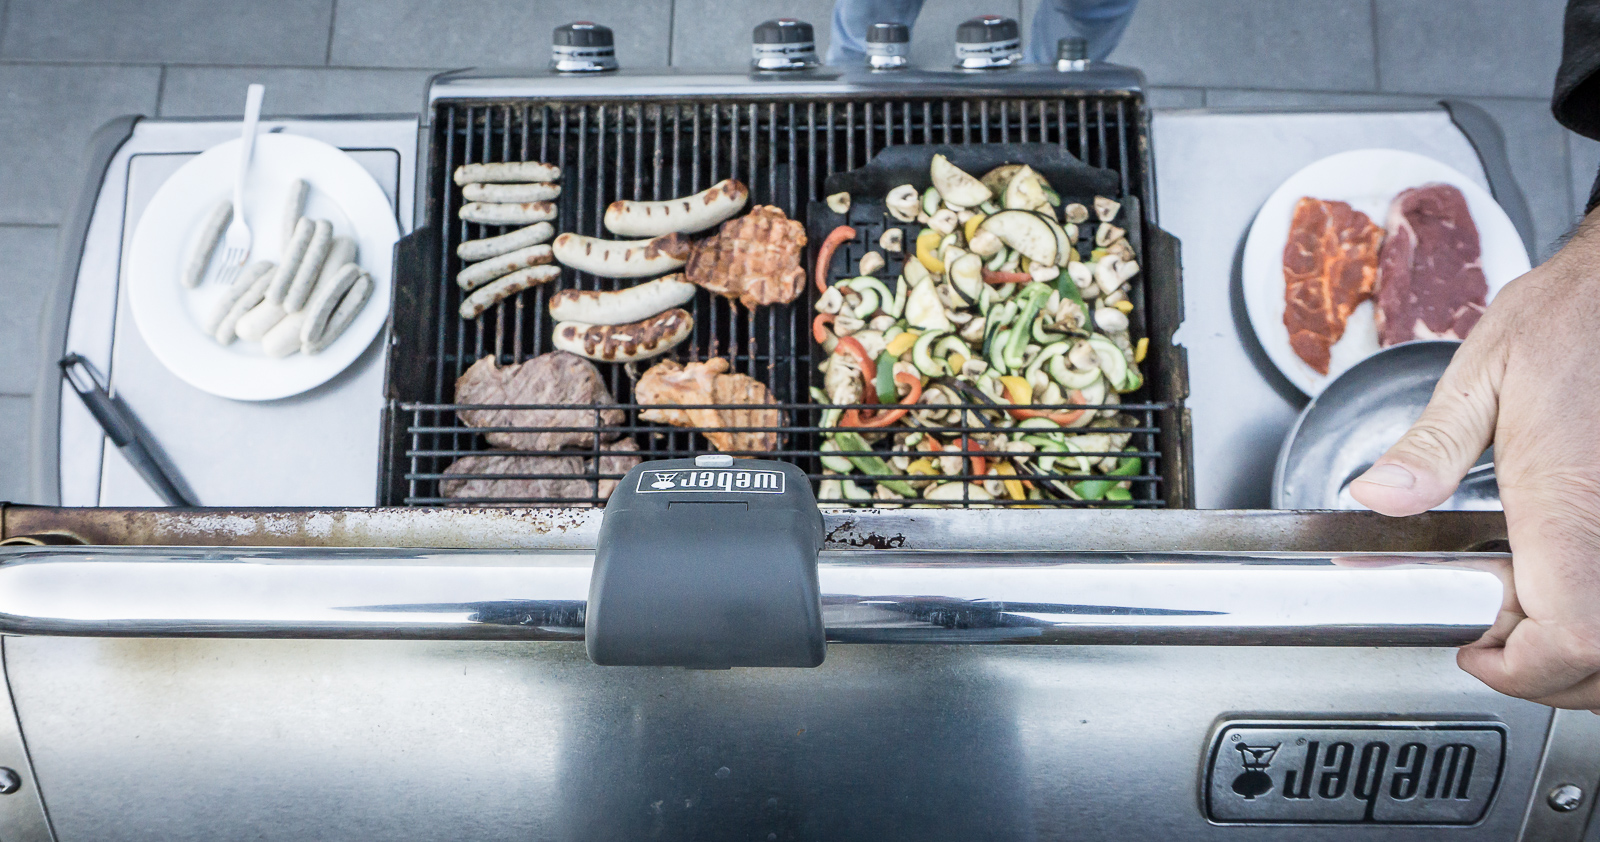 mosel_6grill-03331